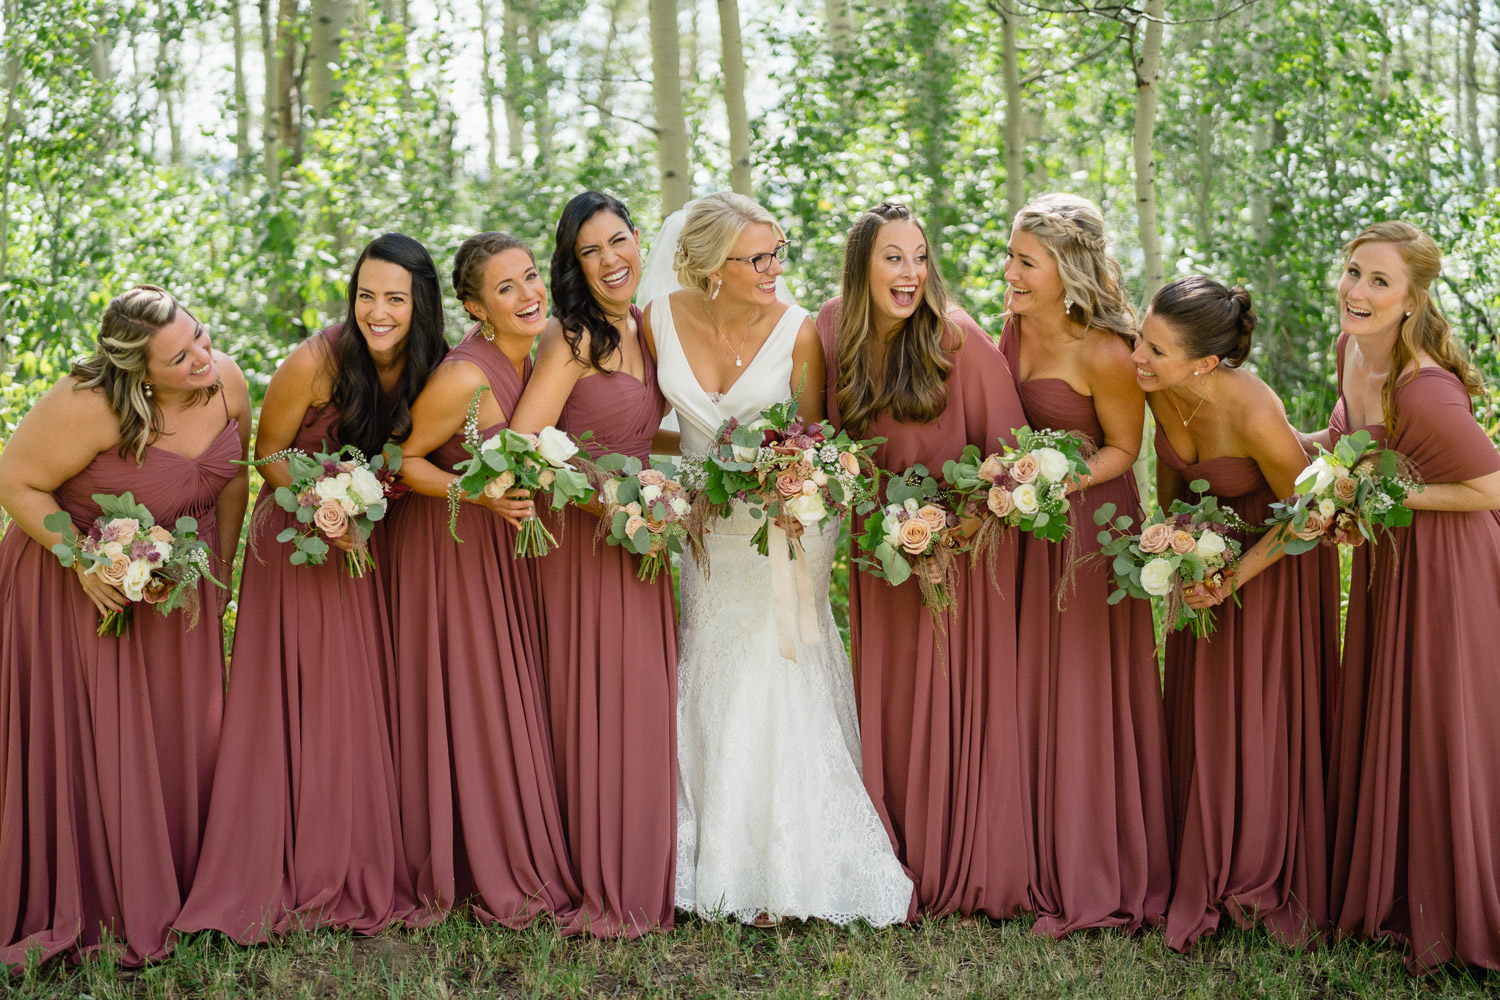 bride and bridal party outside in aspen trees park city utah